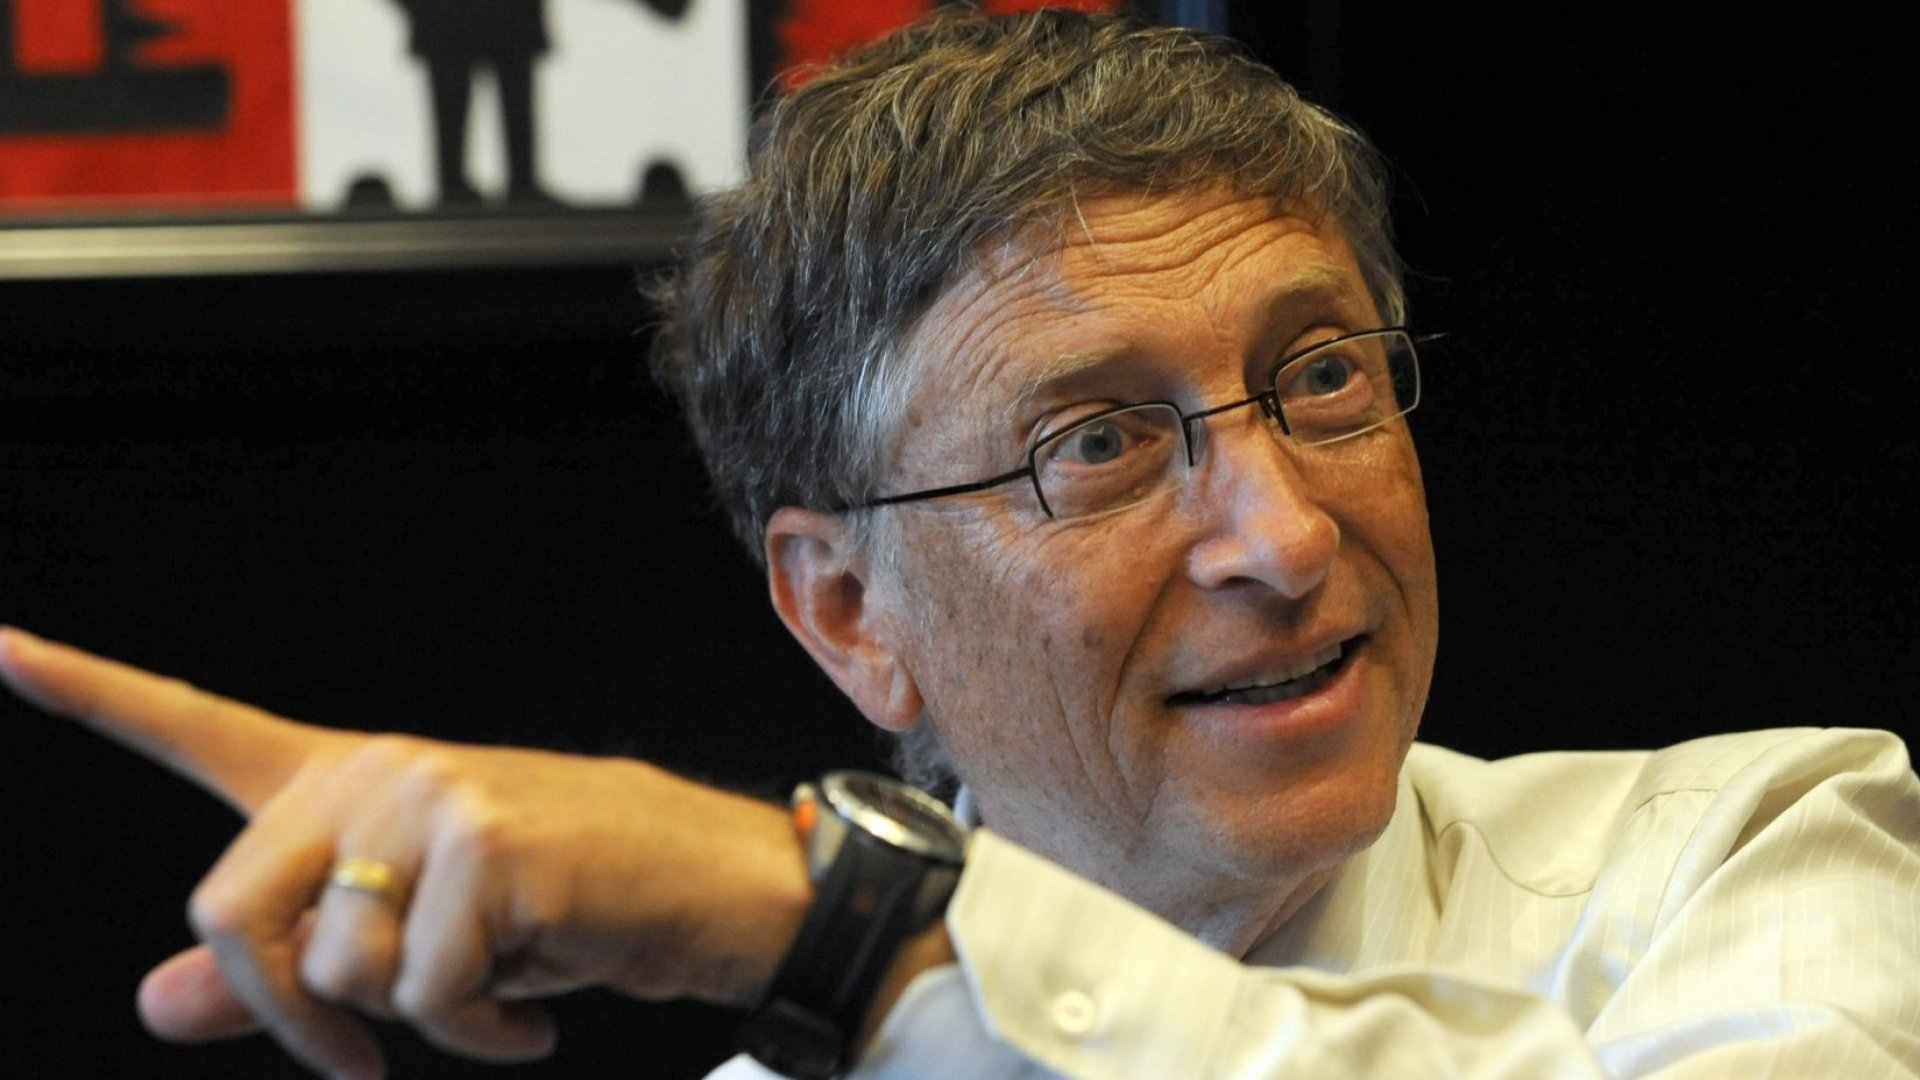 Bill Gates discusses global health in Ghana.